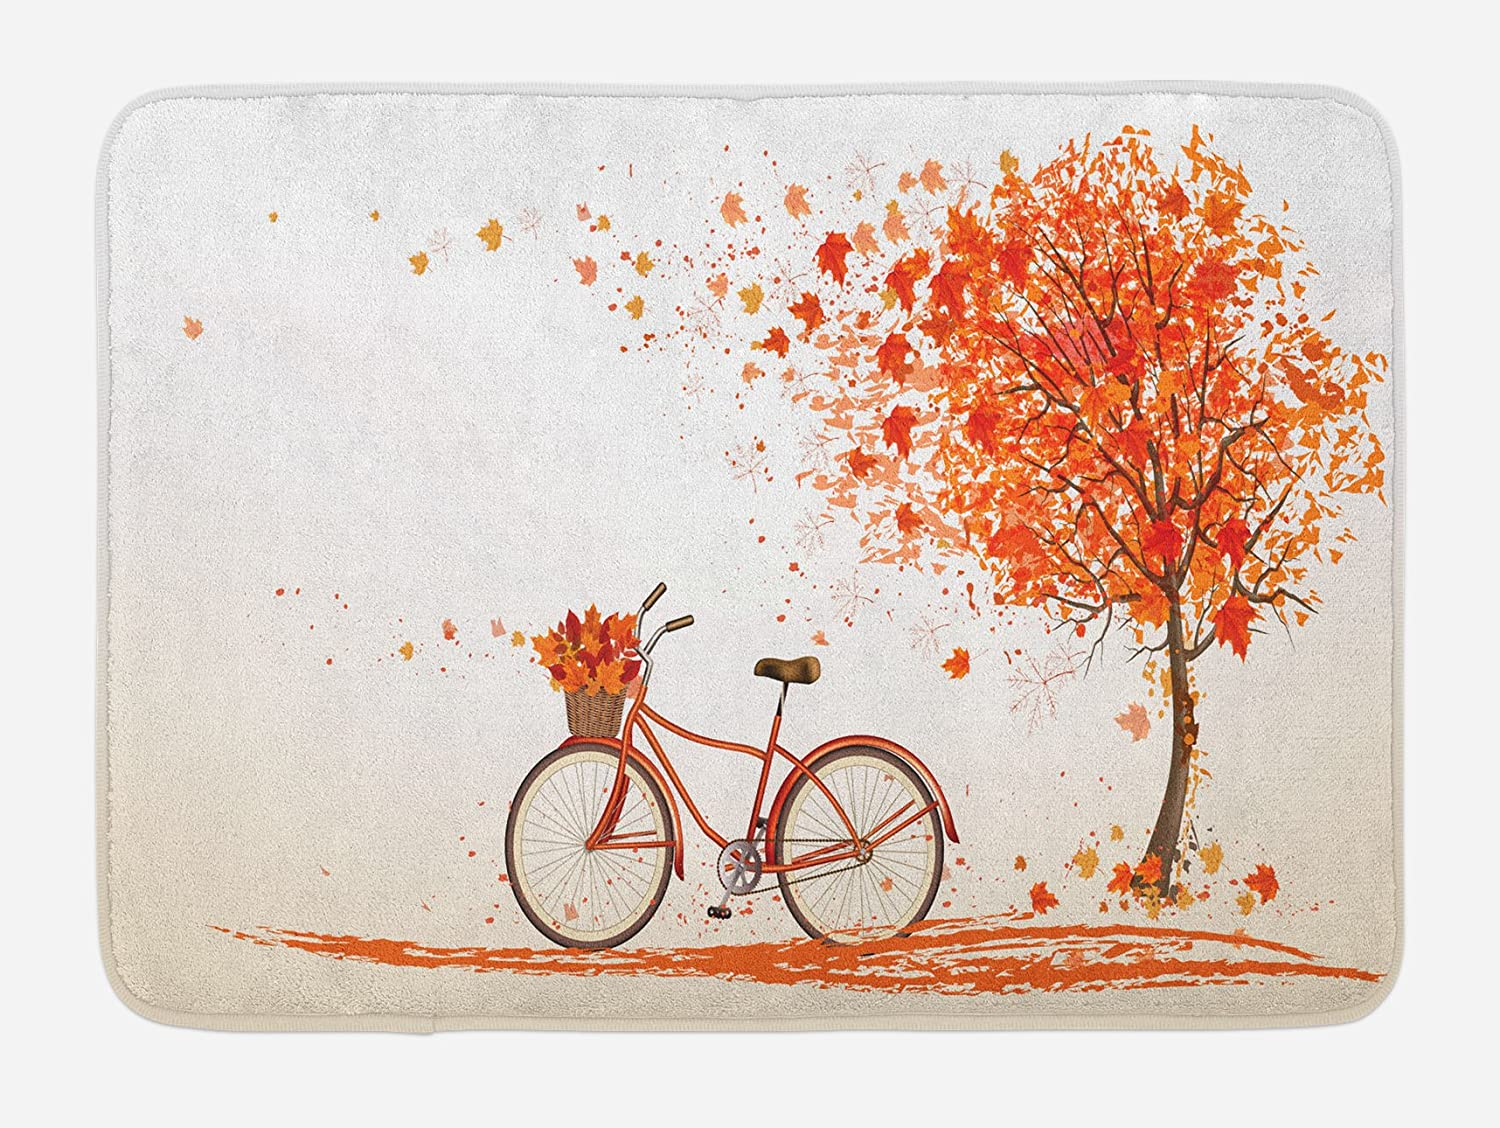 Ambesonne Bicycle Bath Mat, Autumn Tree with Aged Old Bike and Fall Tree November Day Fall Season Park Nature Theme, Plush Bathroom Decor Mat with Non Slip Backing, 29.5 X 17.5, Orange